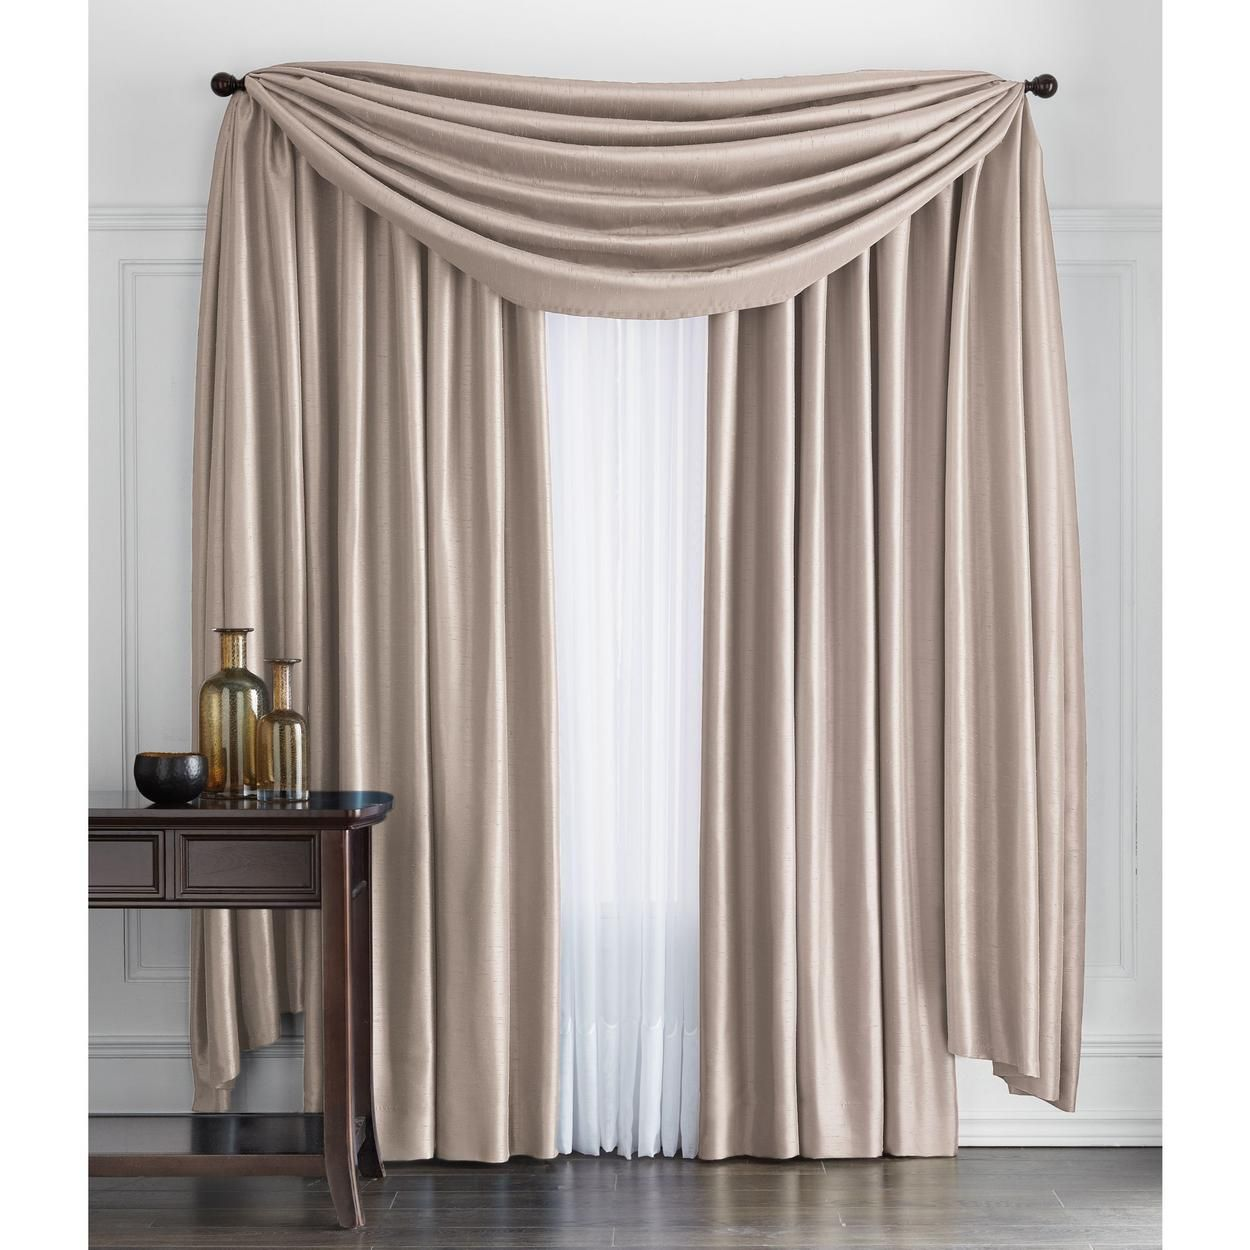 Antique Satin Scarf Valance For 79 90